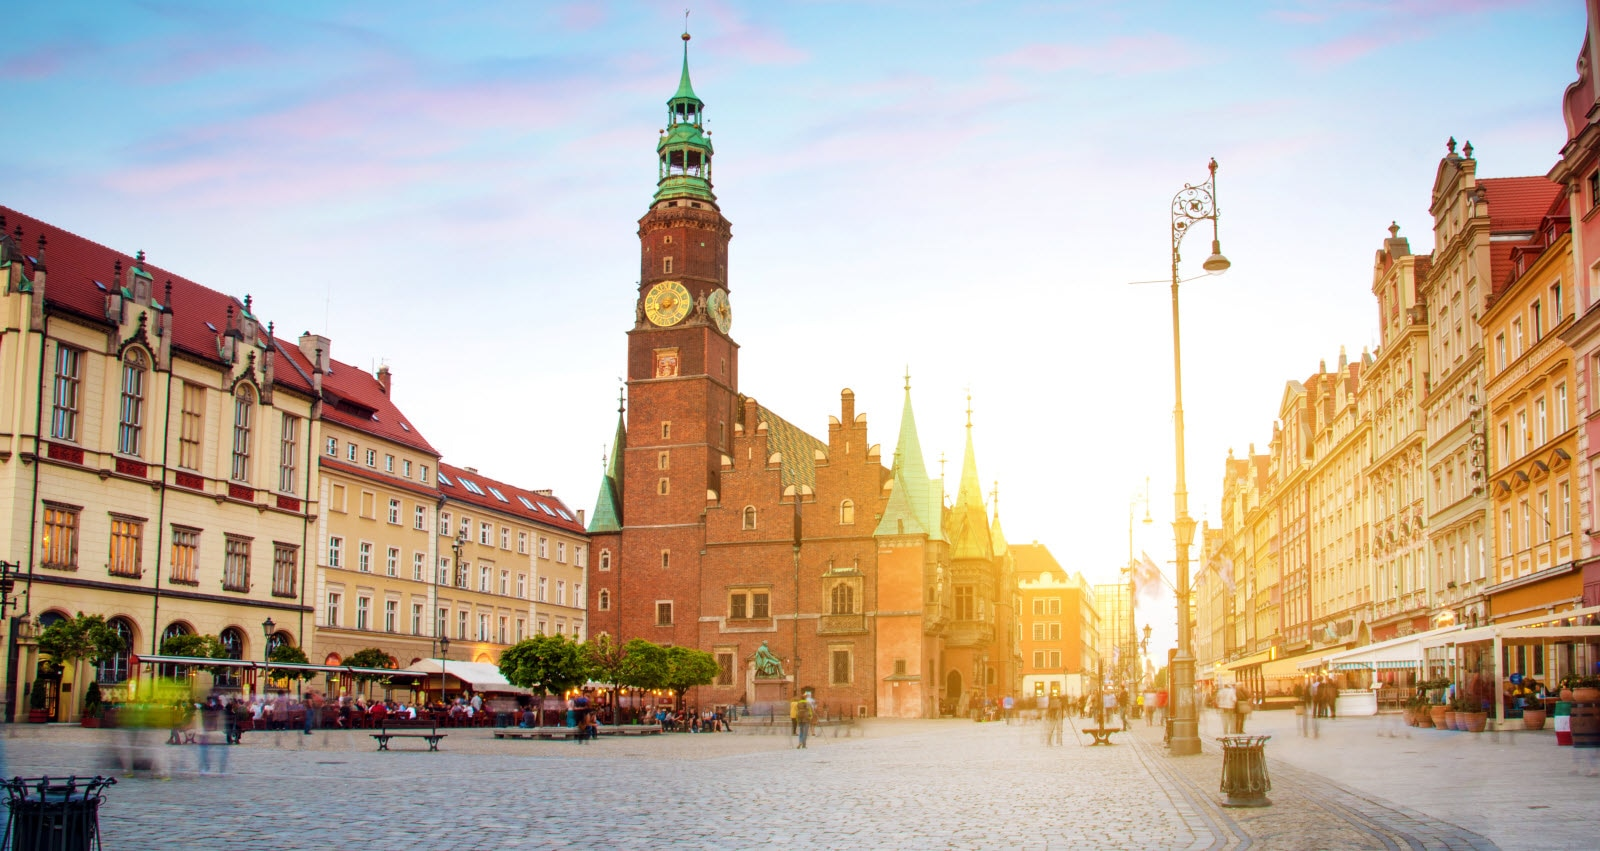 fantastic urban landscape with Town Hall on the medieval Market square in Wroclaw (capital of Silesia), Poland, Europe at sunset.